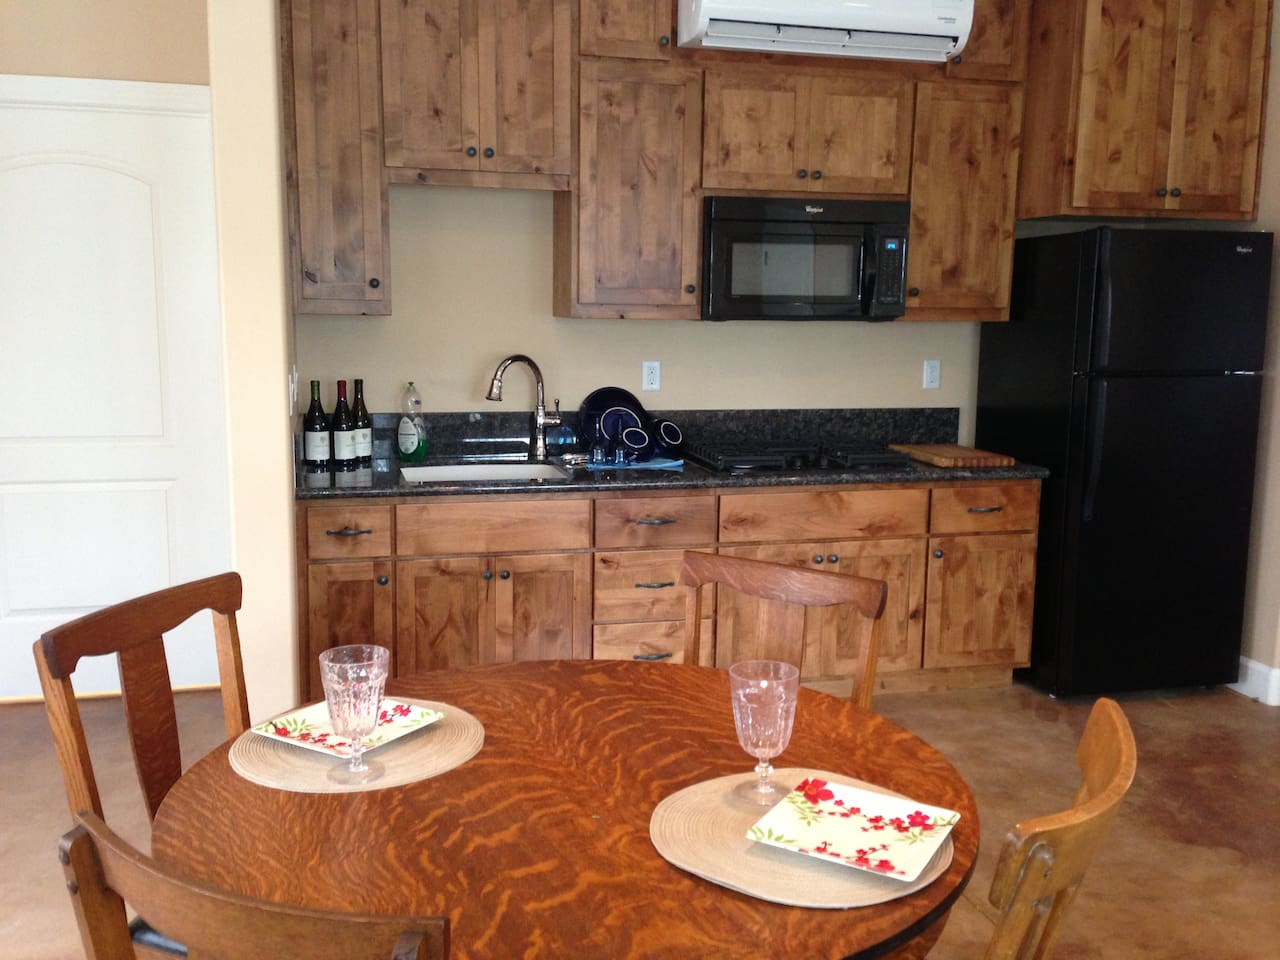 Kitchenette has beautiful wood cabinets and granite counter tops.